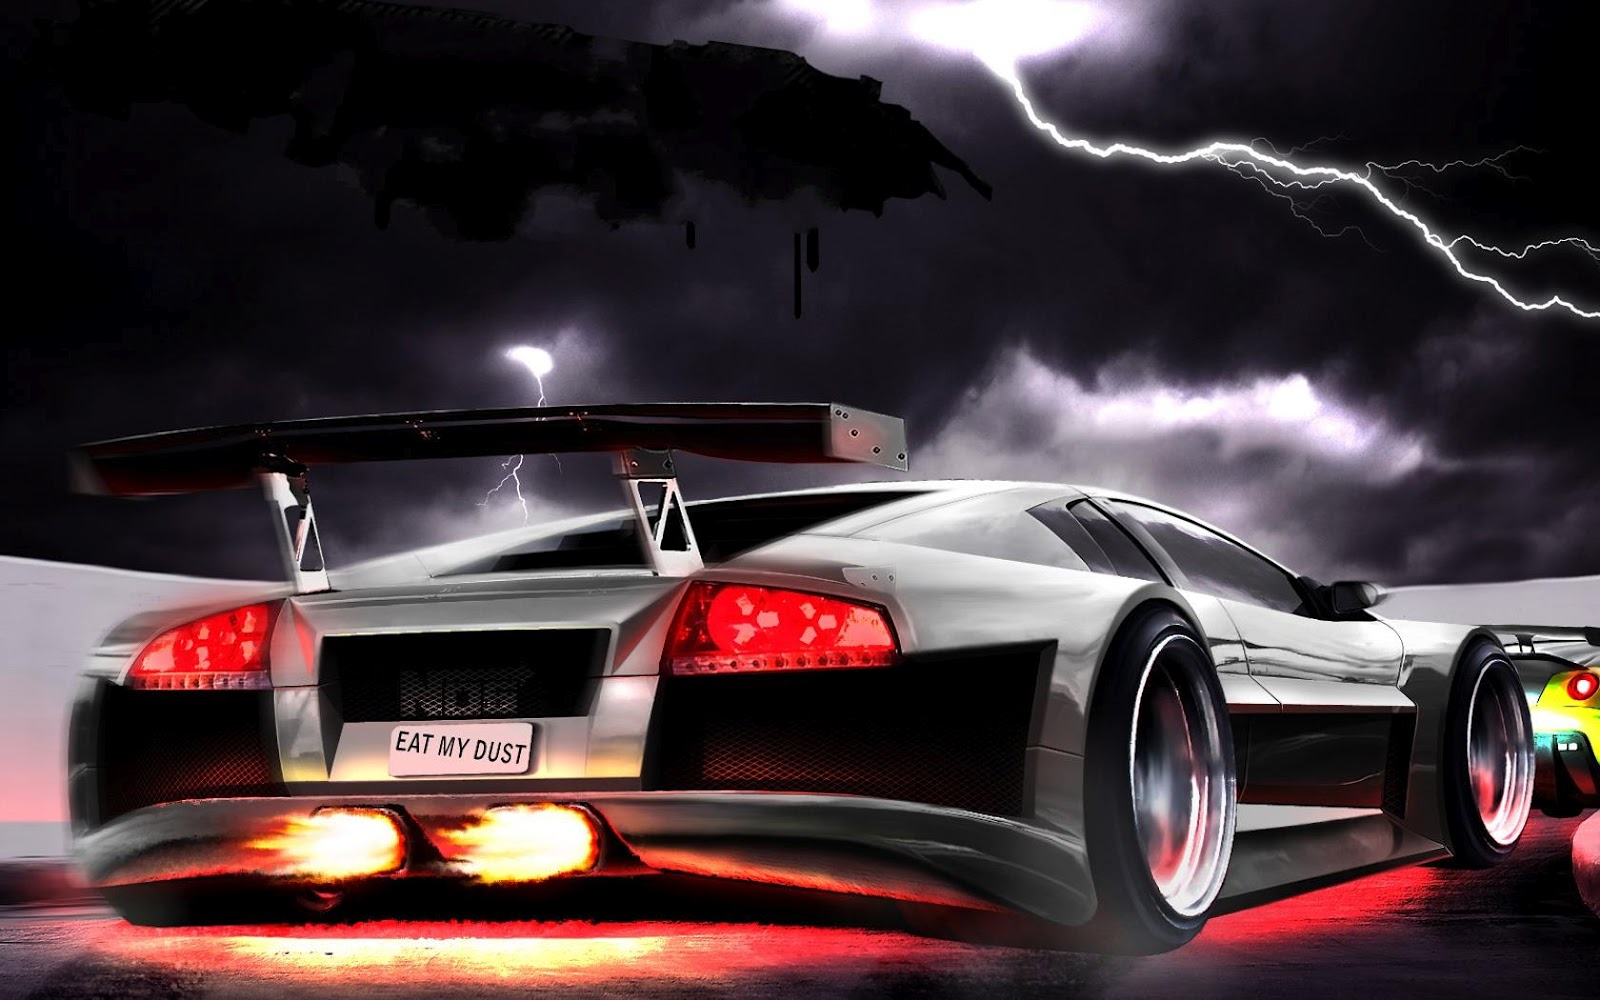 Image Cool 3d Car Wallpaper Lamborghini Download 1600x1000